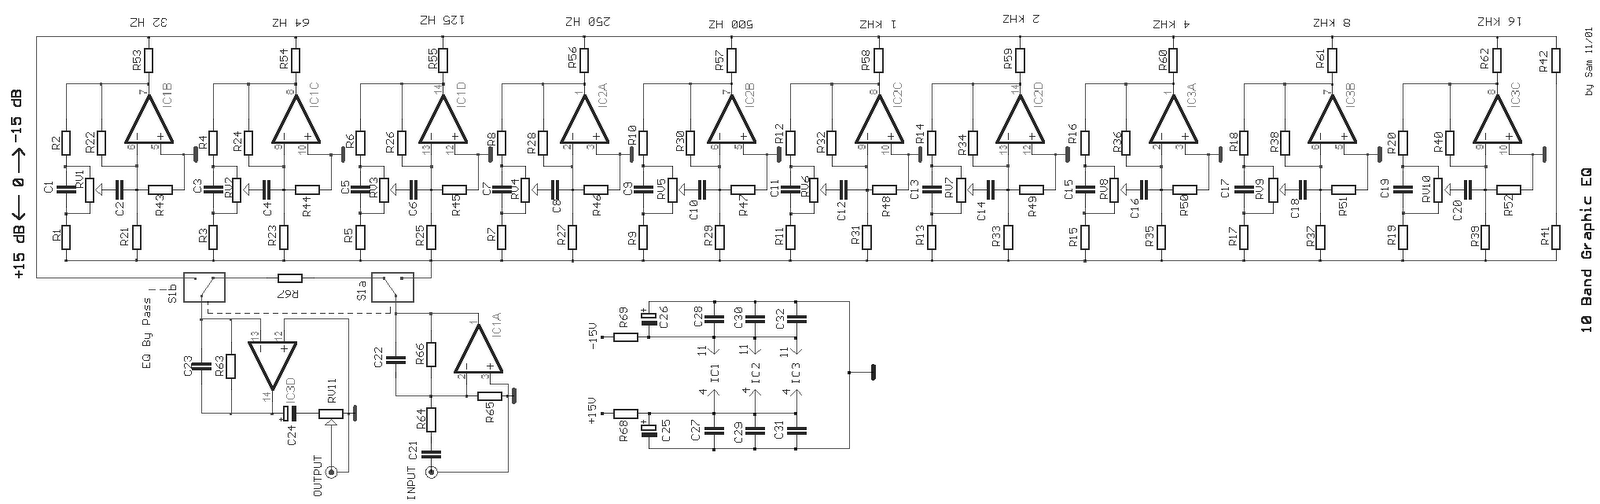 5 Band Graphic Equaliser Circuit Diagram - Electricity Site  Band Eq Schematic on rickenbacker 4003 schematic, master volume schematic, fuzz pedal schematic, headphone jack schematic, delay schematic, switch schematic, power amp schematic, compressor schematic, phaser schematic, parametric equalizer schematic, solar charge controller schematic, chorus schematic, op-amp schematic, refrigeration system schematic, clean boost schematic, transformer schematic,